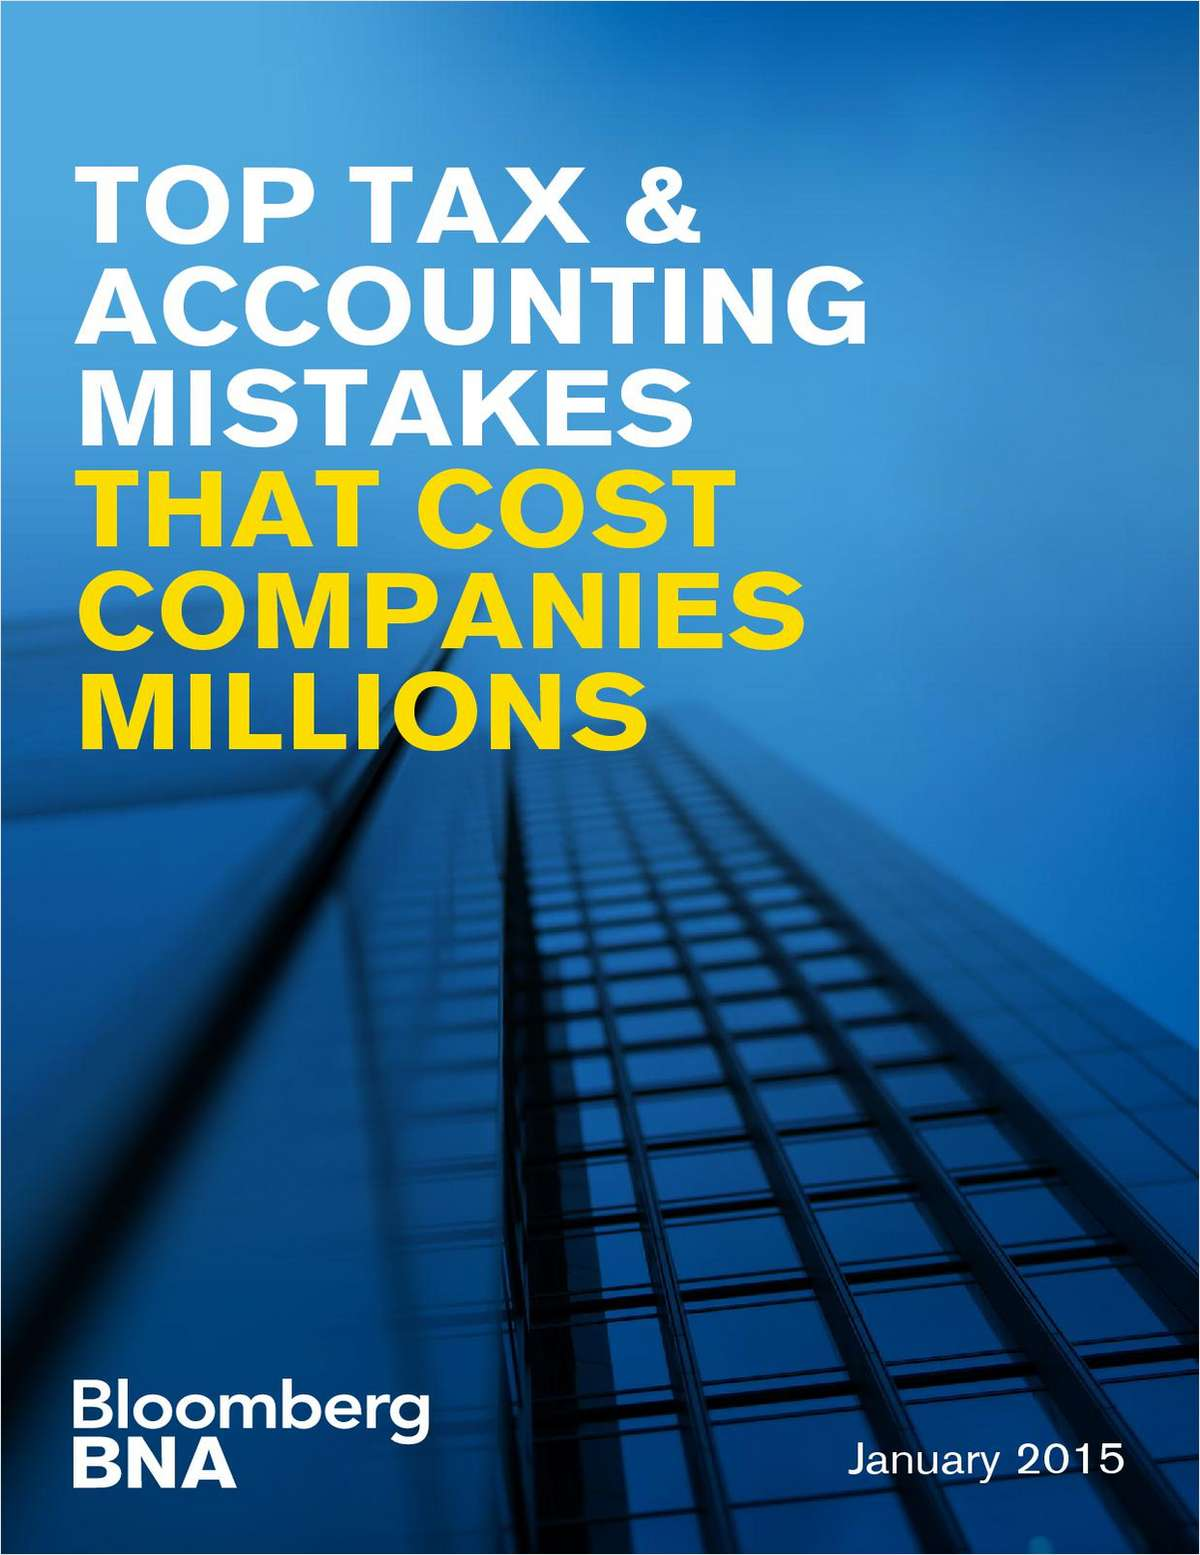 Top Tax & Accounting Mistakes That Cost Companies Millions